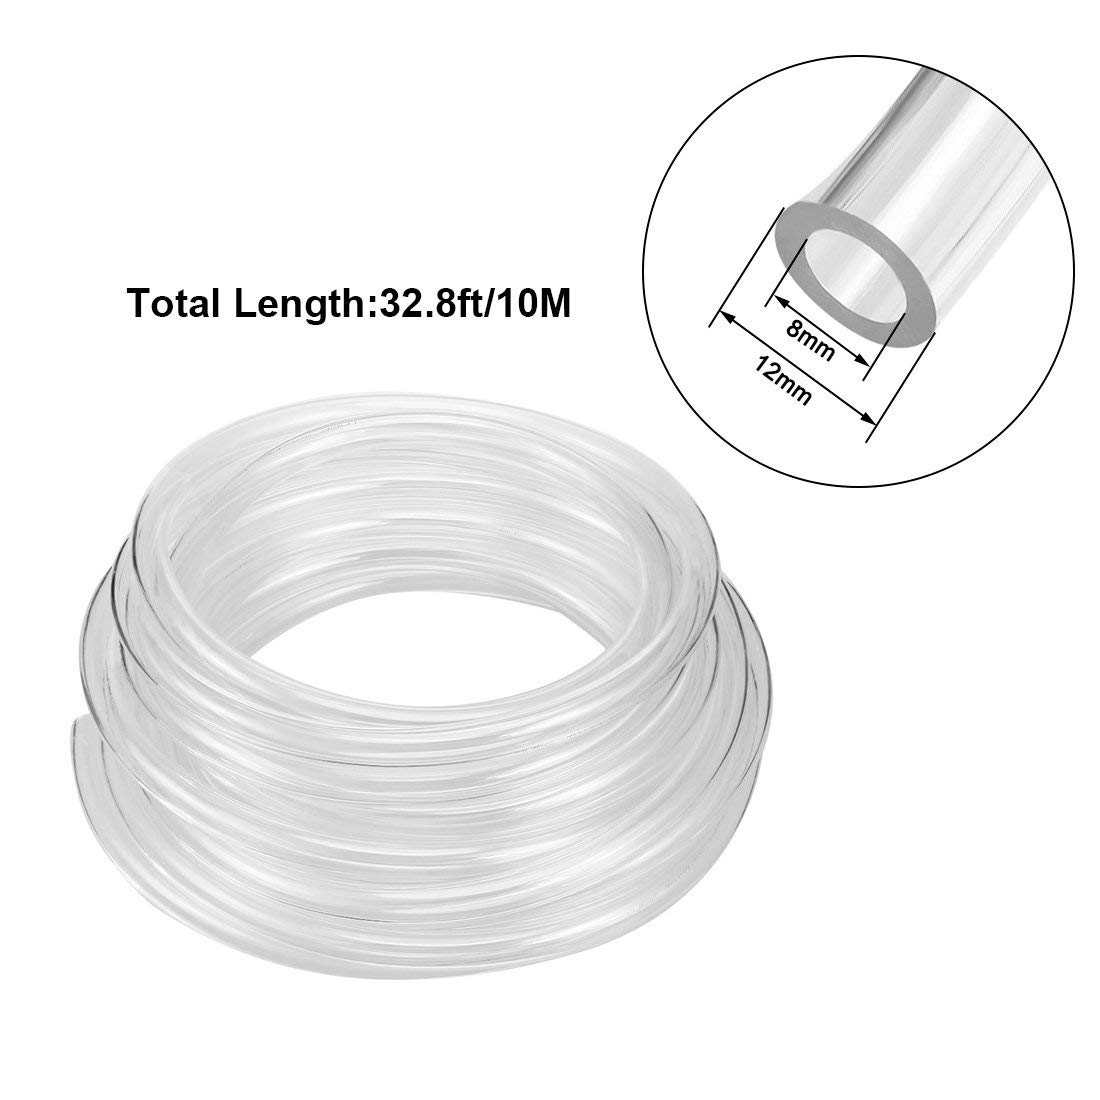 PVC Tubing 3.5mm Clear Rubber Silicon Priced Per 2mtrs